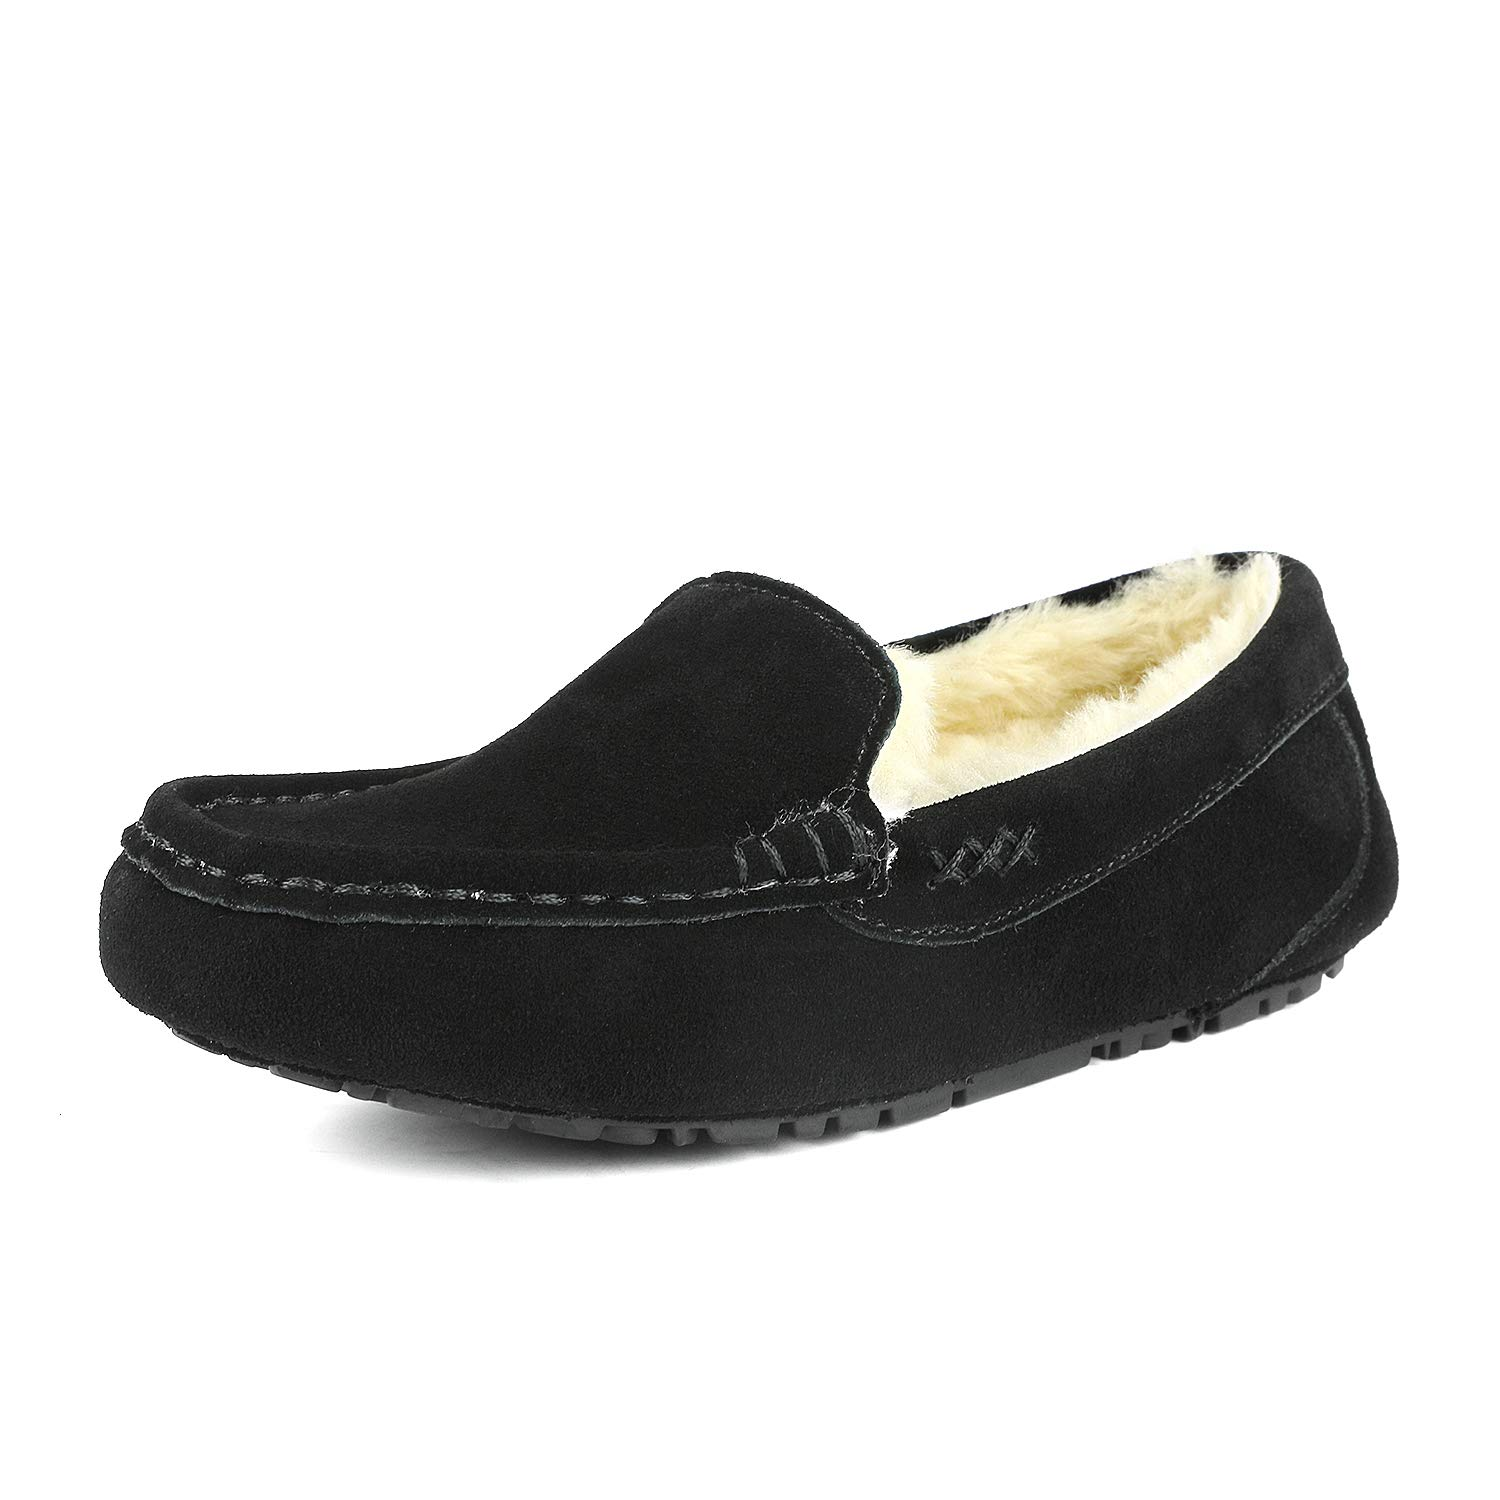 b9c46a7bee3e0 DREAM PAIRS Women's Auzy Winter Moccasins Slippers